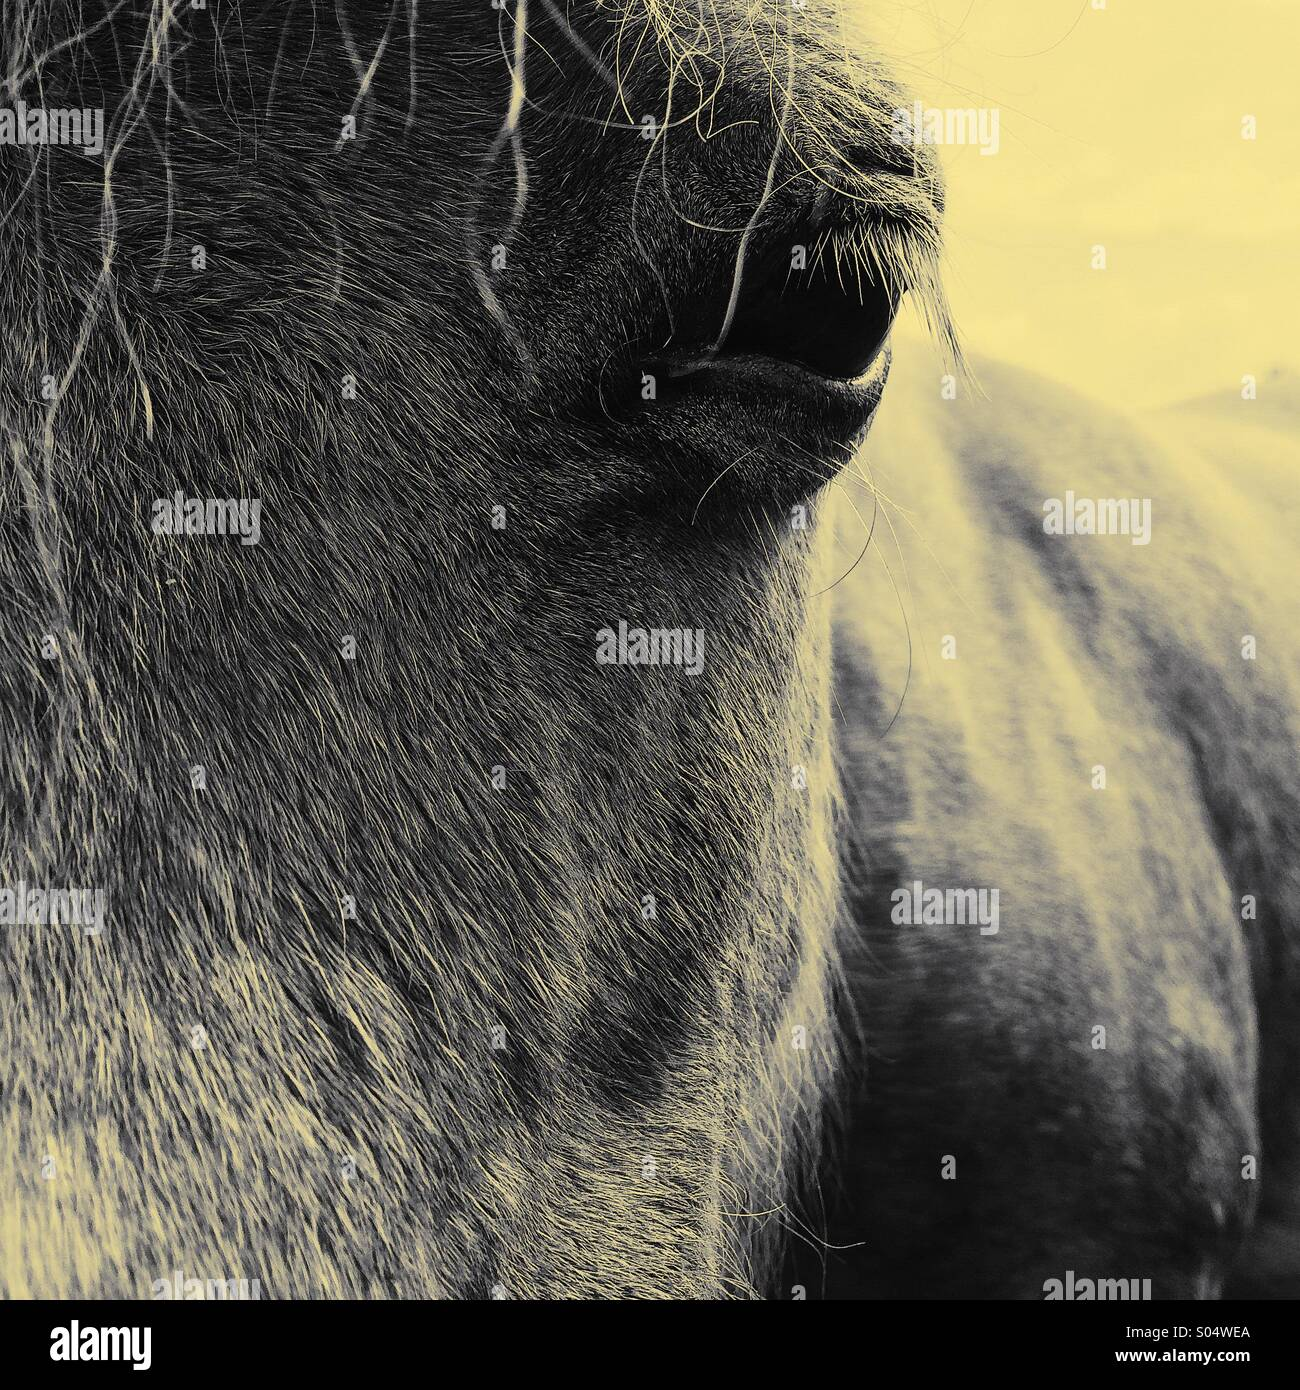 Horse face and eye close up - Stock Image